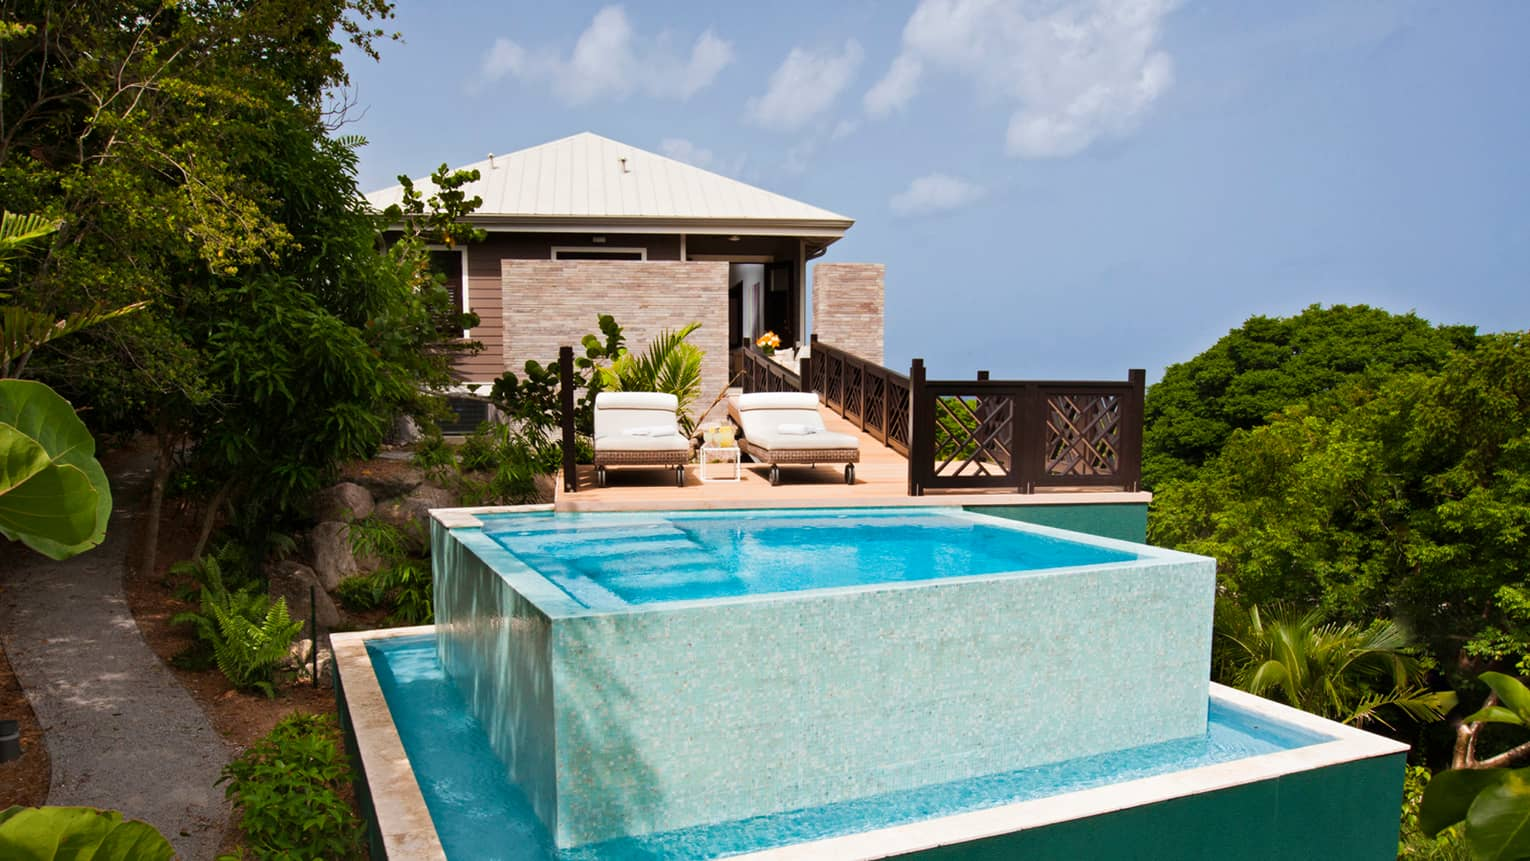 Stewarts Hill Residence Villa patio, two-level swimming pool